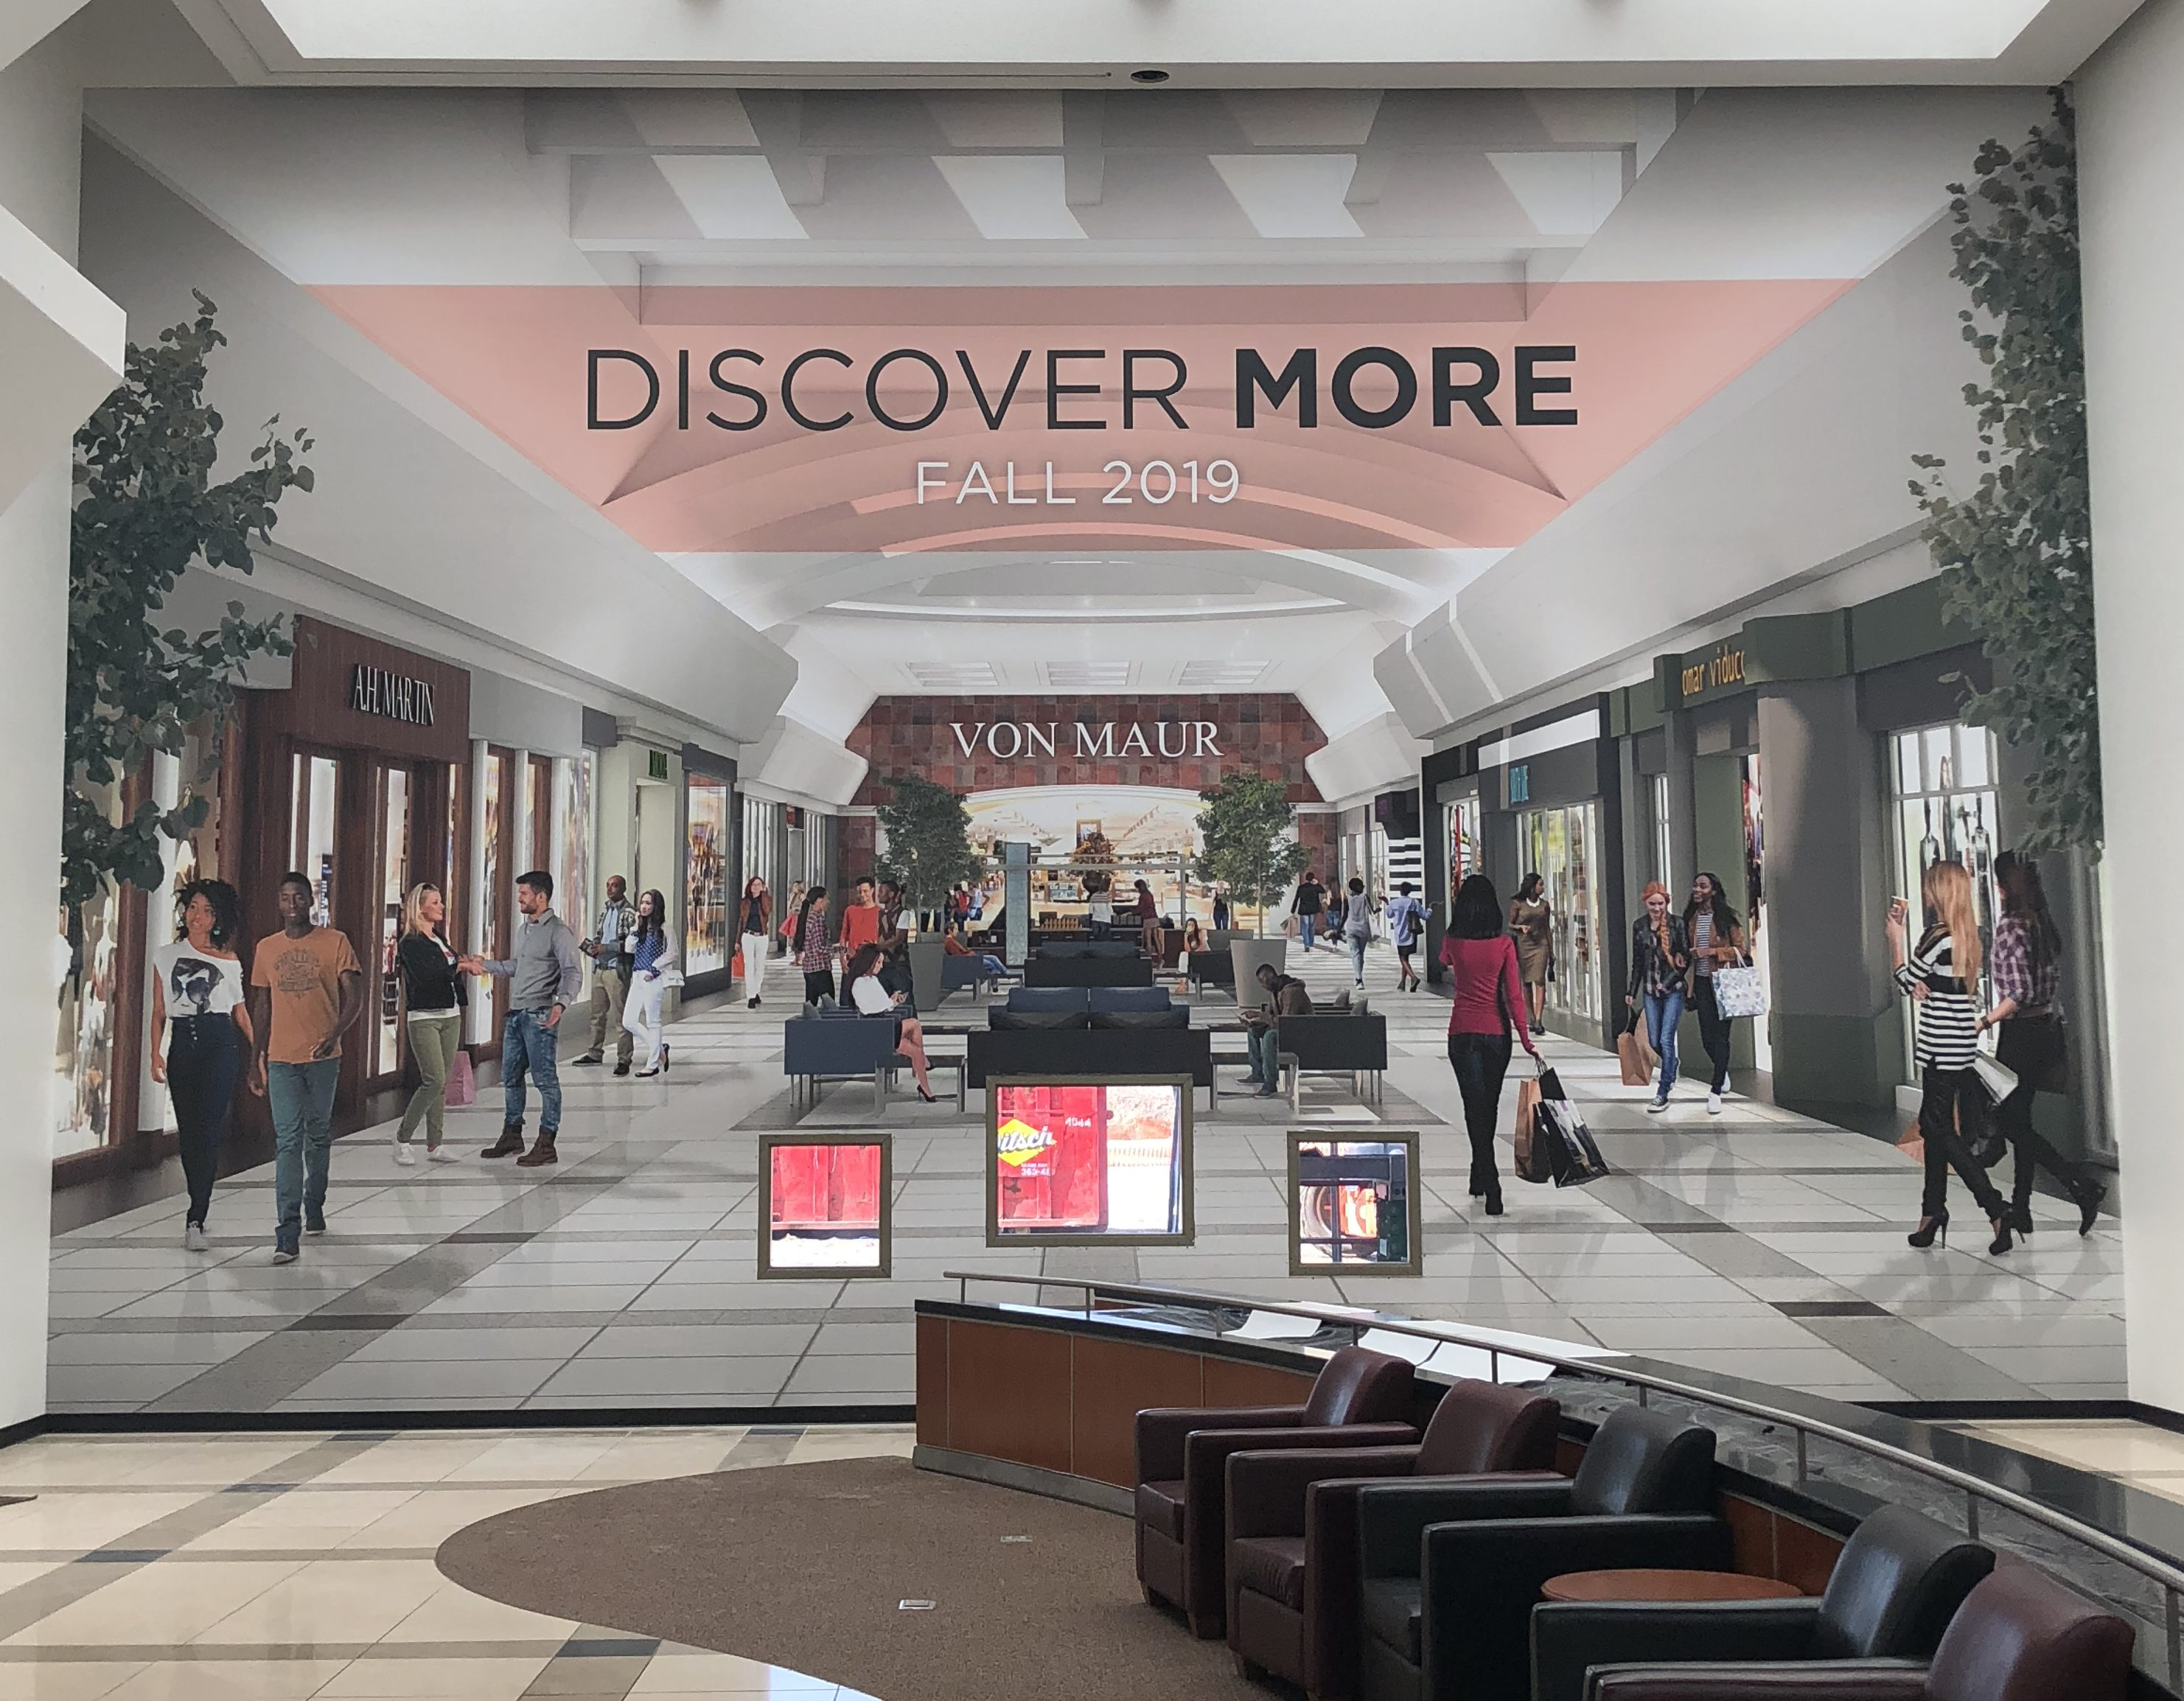 1eaeda13a08 The mall has installed a 24-foot by 36-foot graphic wall depicting what the  extended wing